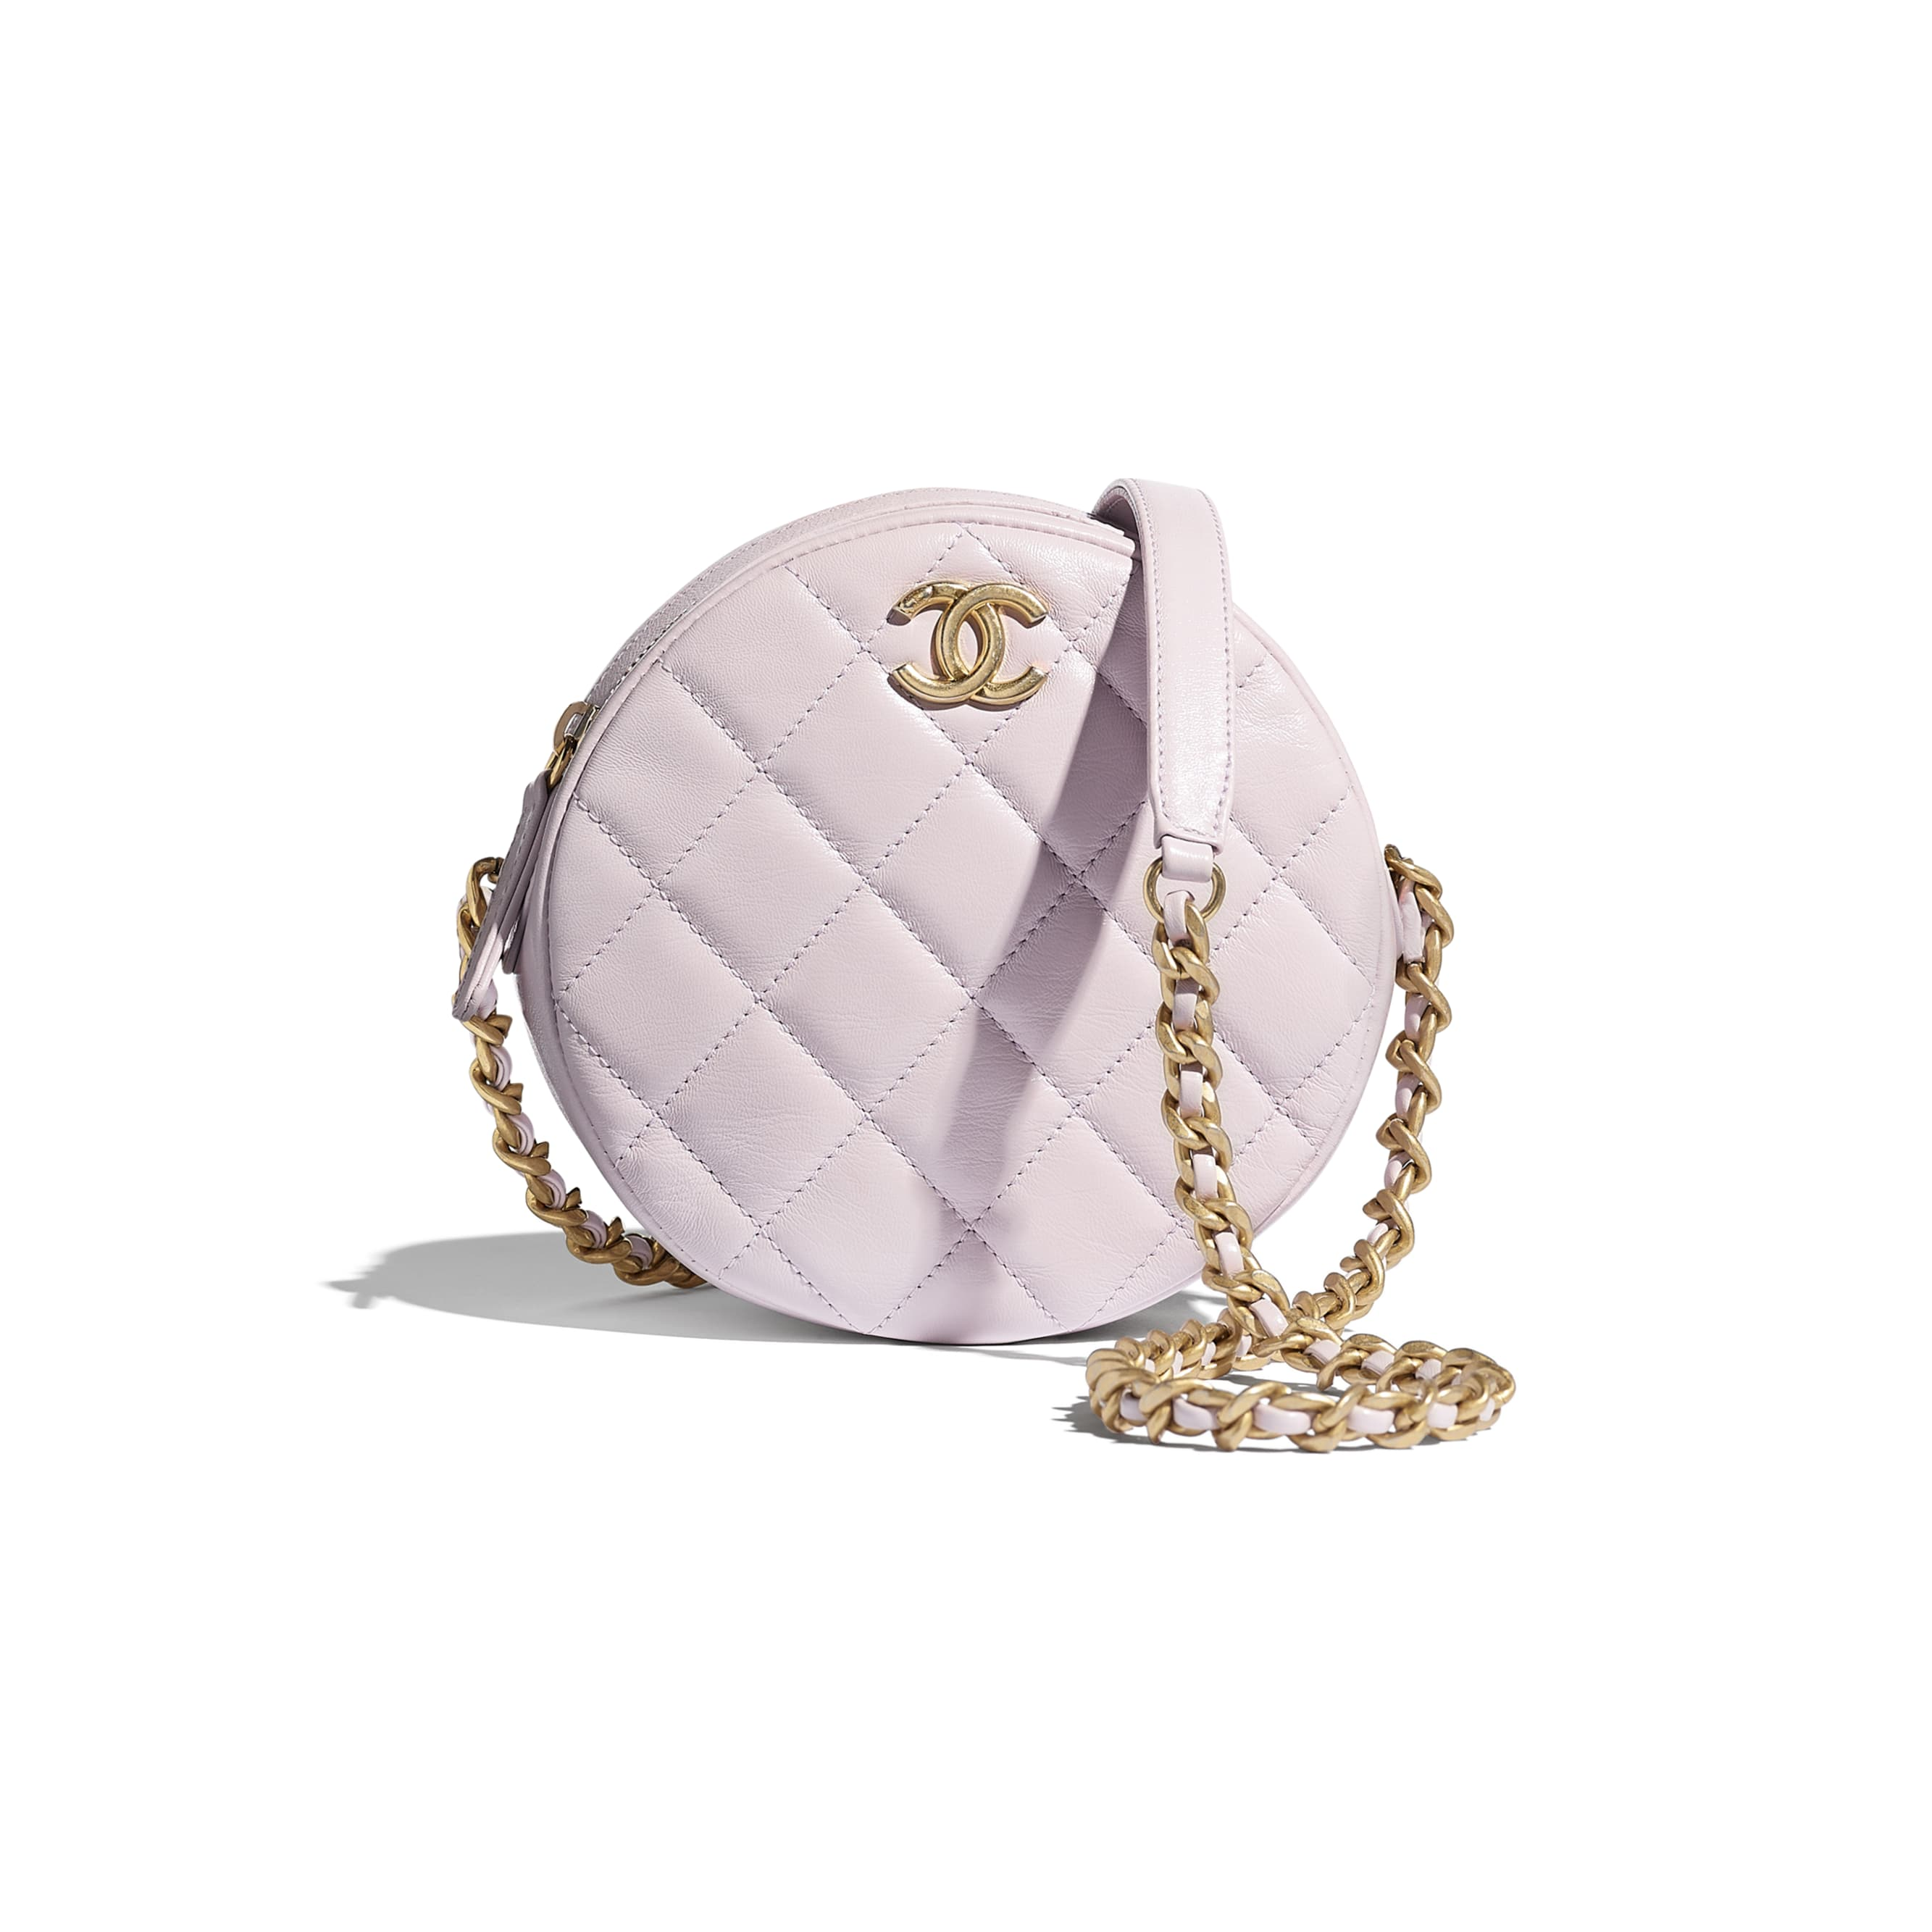 Small Round Bag - Lilac - Shiny Lambskin & Gold-Tone Metal - CHANEL - Default view - see standard sized version